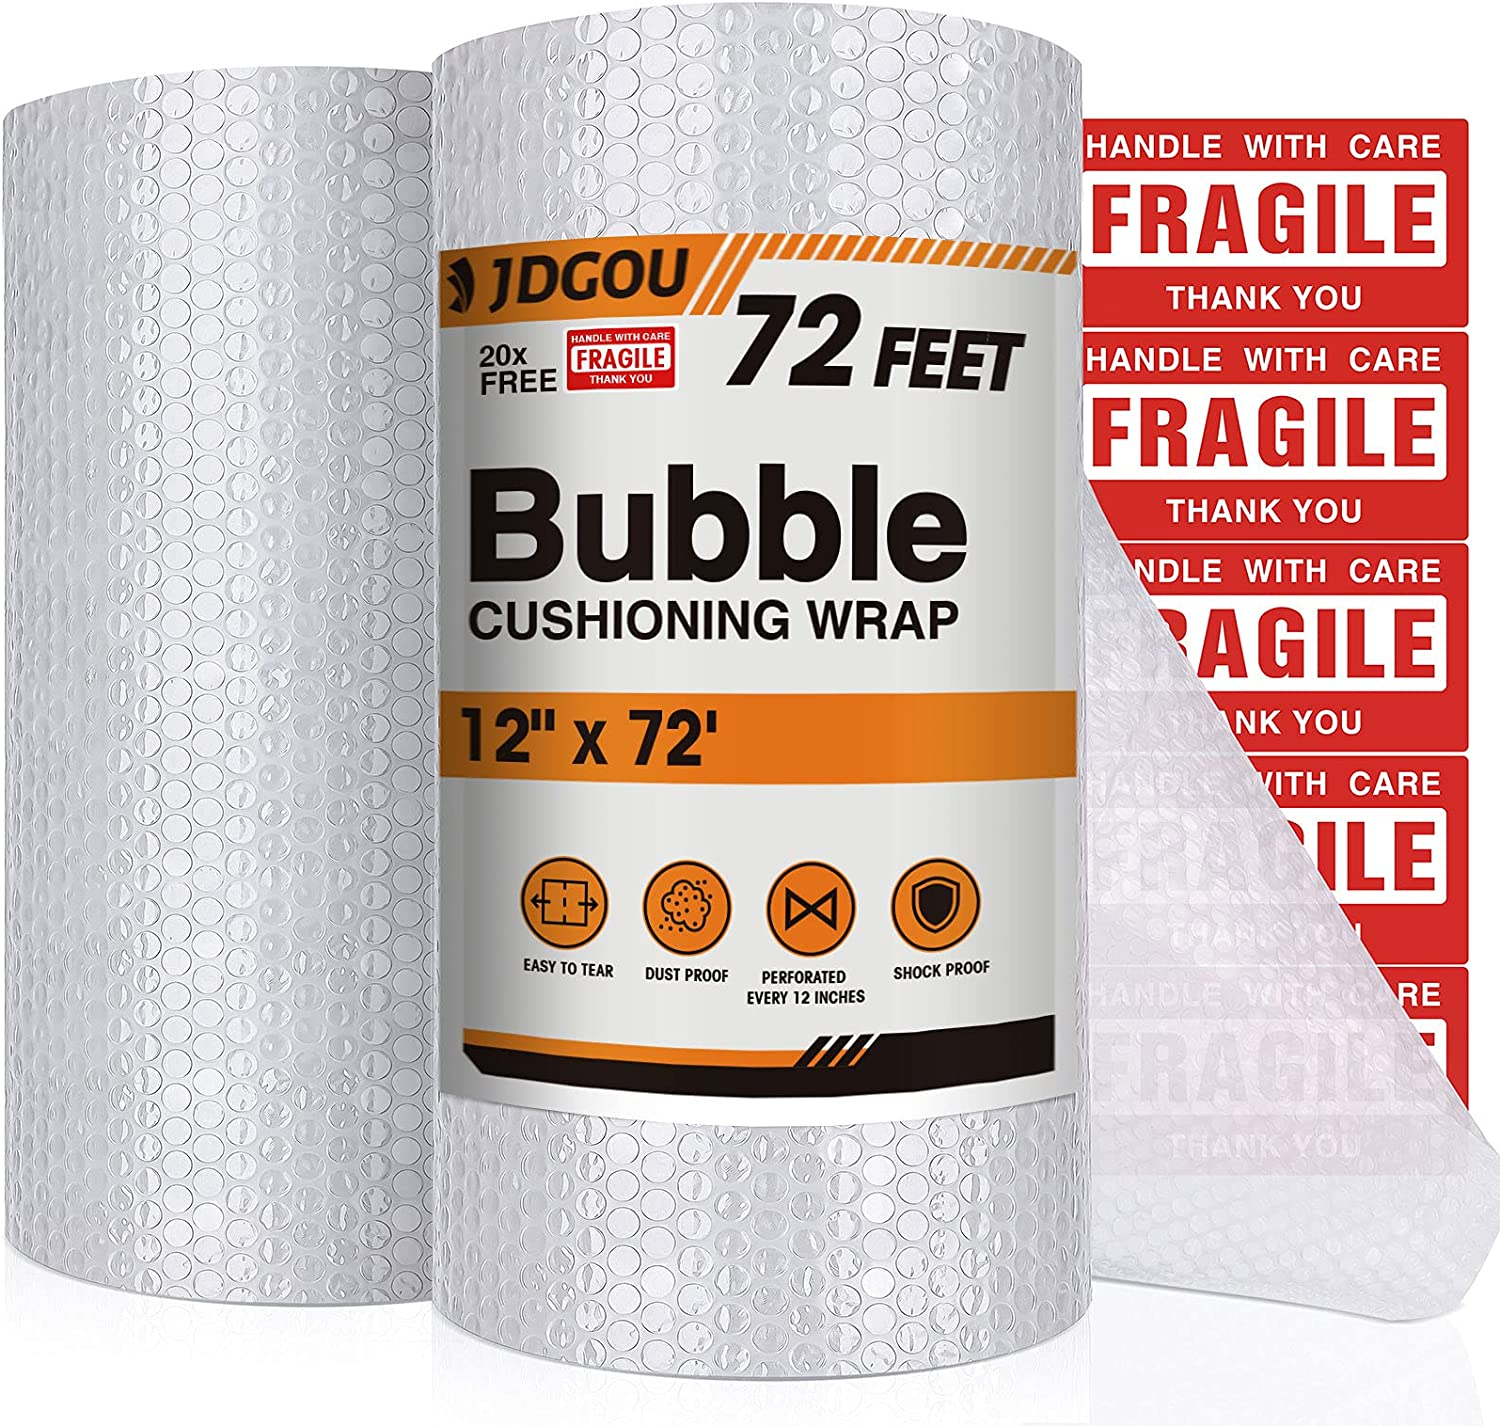 """JDGOU Bubble Cushion Wrap For Packing 12""""x72 FEET Bubble Cushion Wrap Full 3/16"""" Air Bubble Large Bubble Cushion Wrap Moving,Perforated Every 12"""",Clear Packing Supplies For Moving : Office Products"""